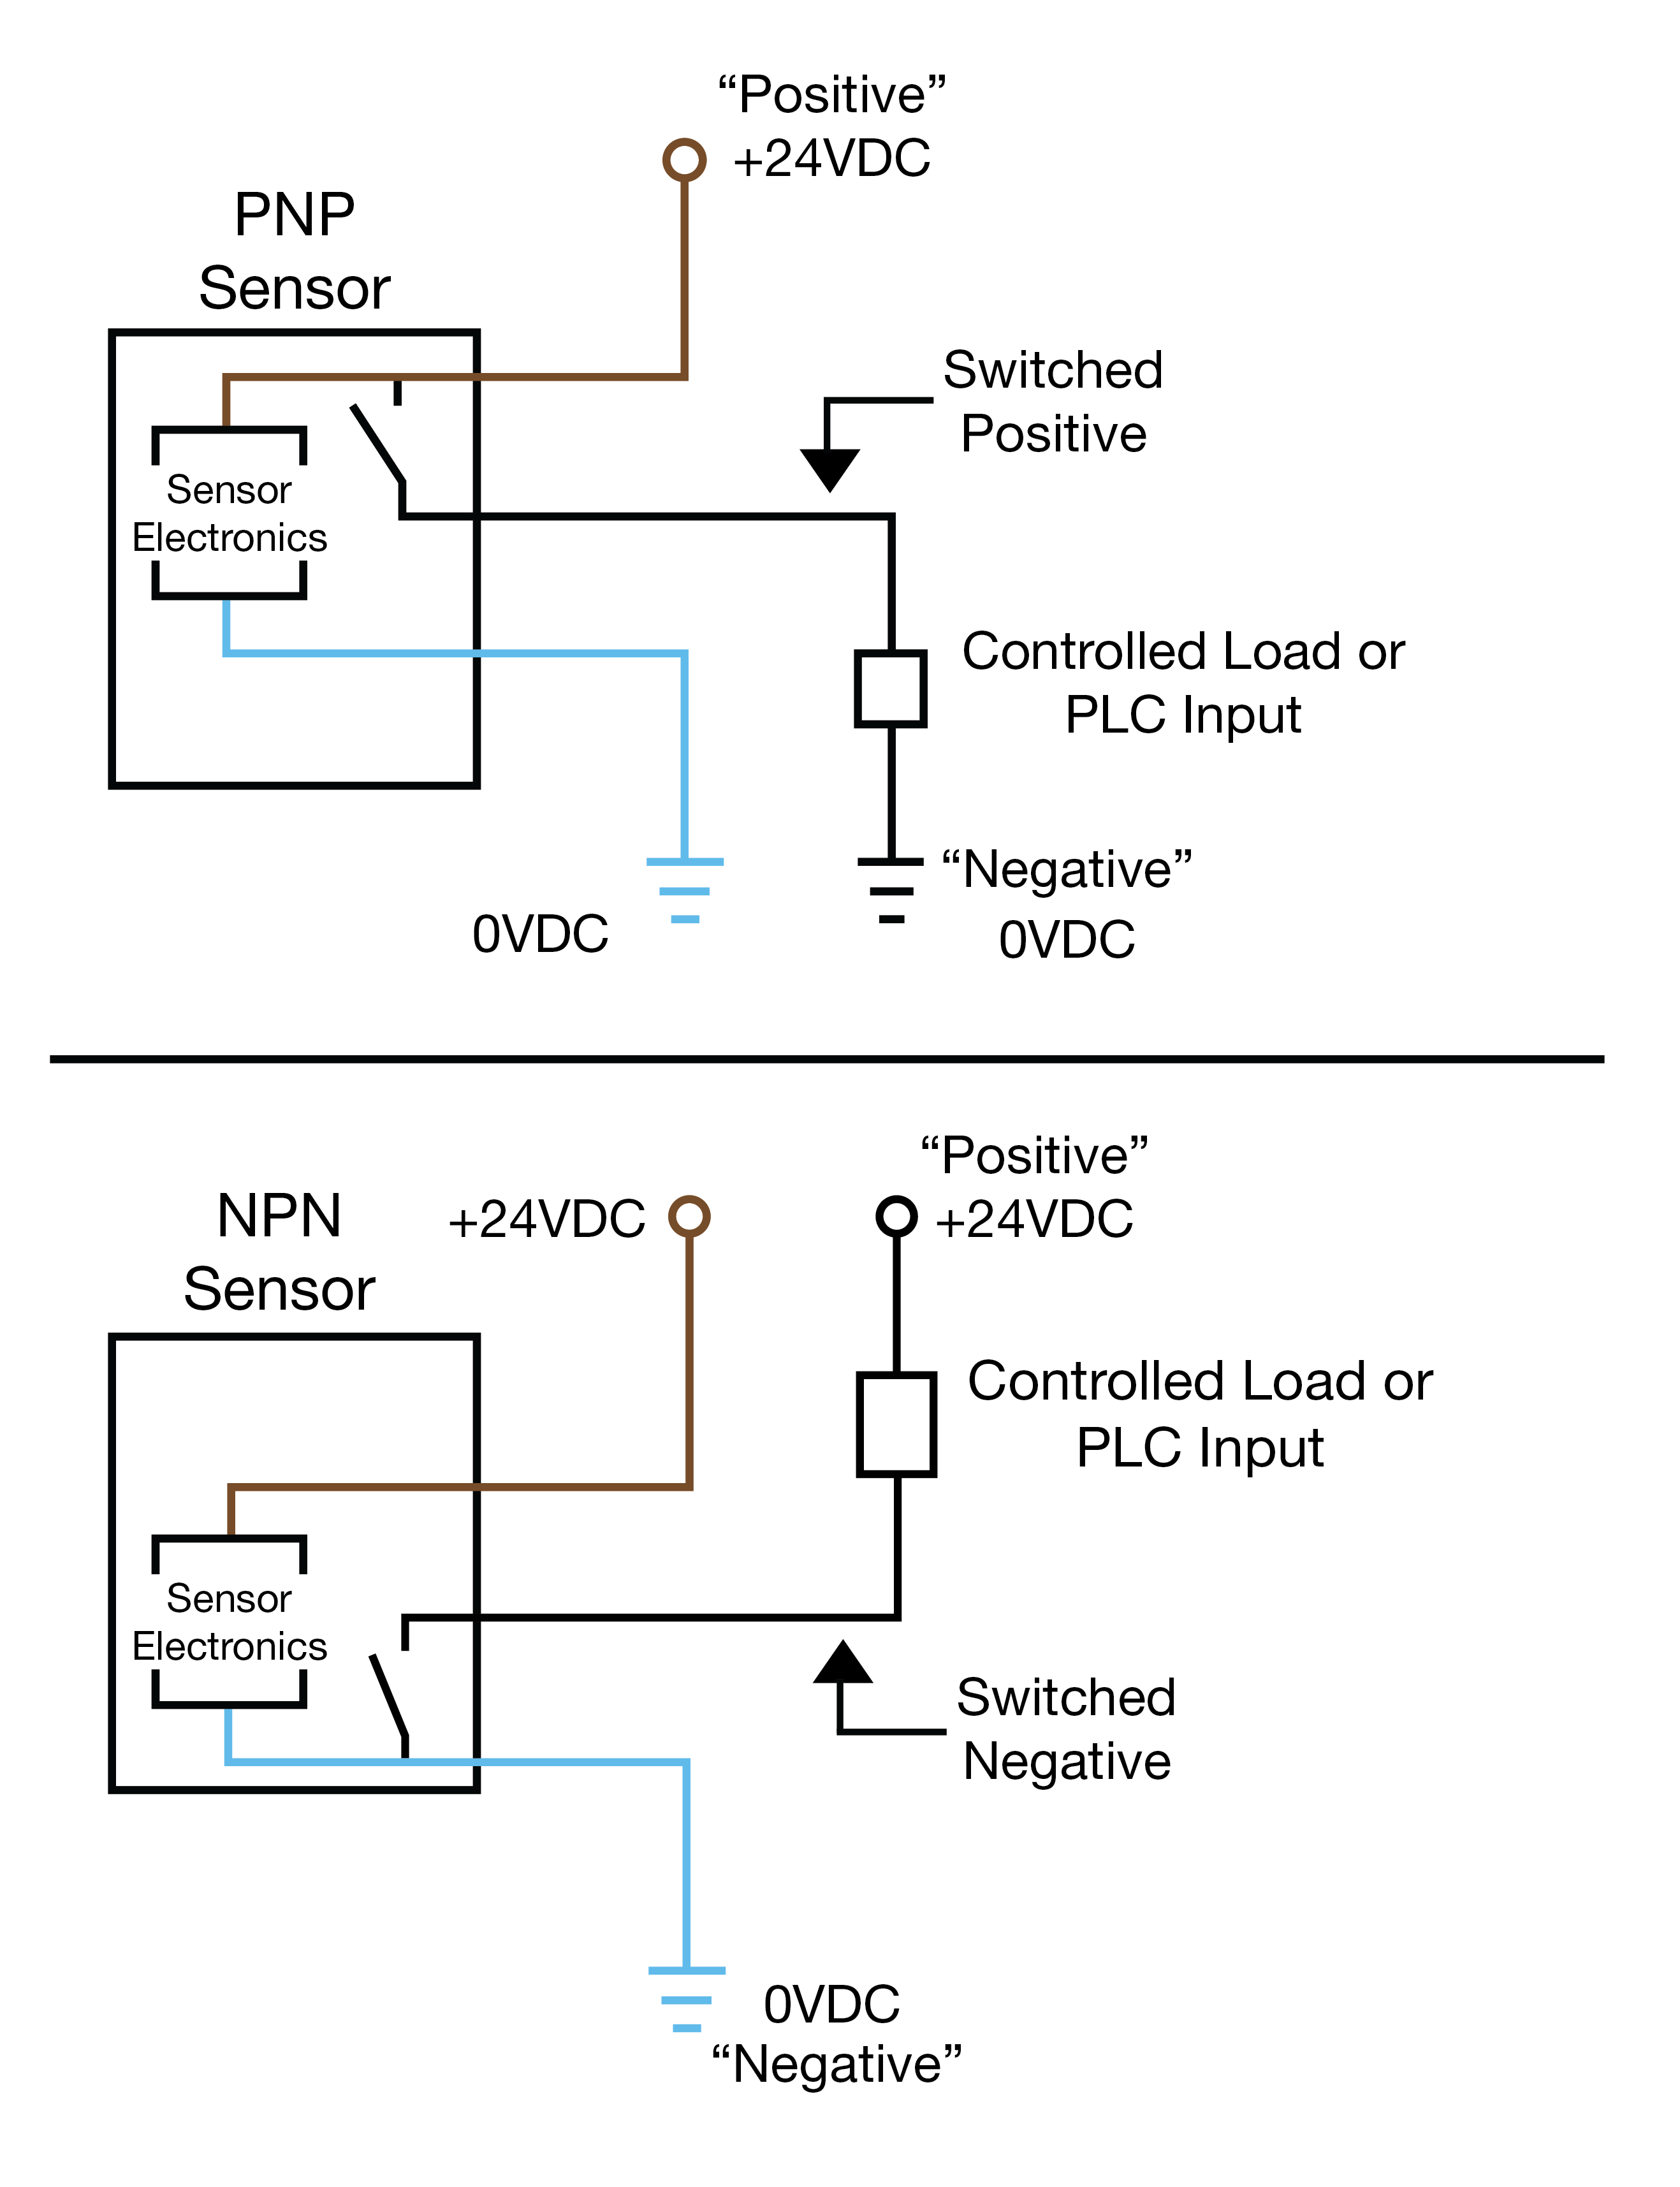 small resolution of an easy way to remember pnp and npn sensor wiring balluff blog photoelectric switch pnp wiring diagram